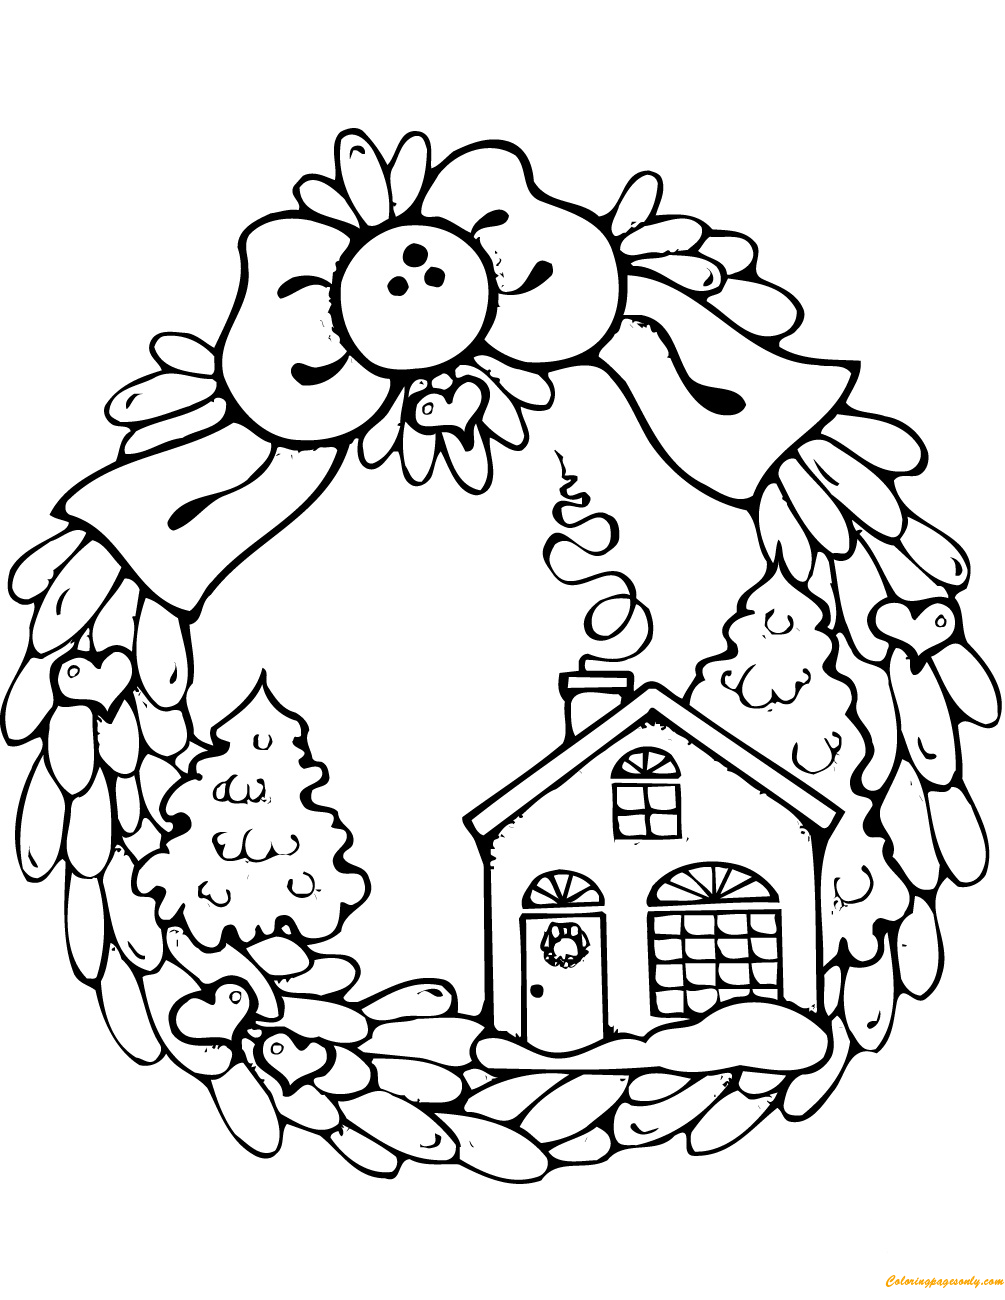 Gingerbread House Christmas Wreath Coloring Pages Holidays Coloring Pages Free Printable Coloring Pages Online